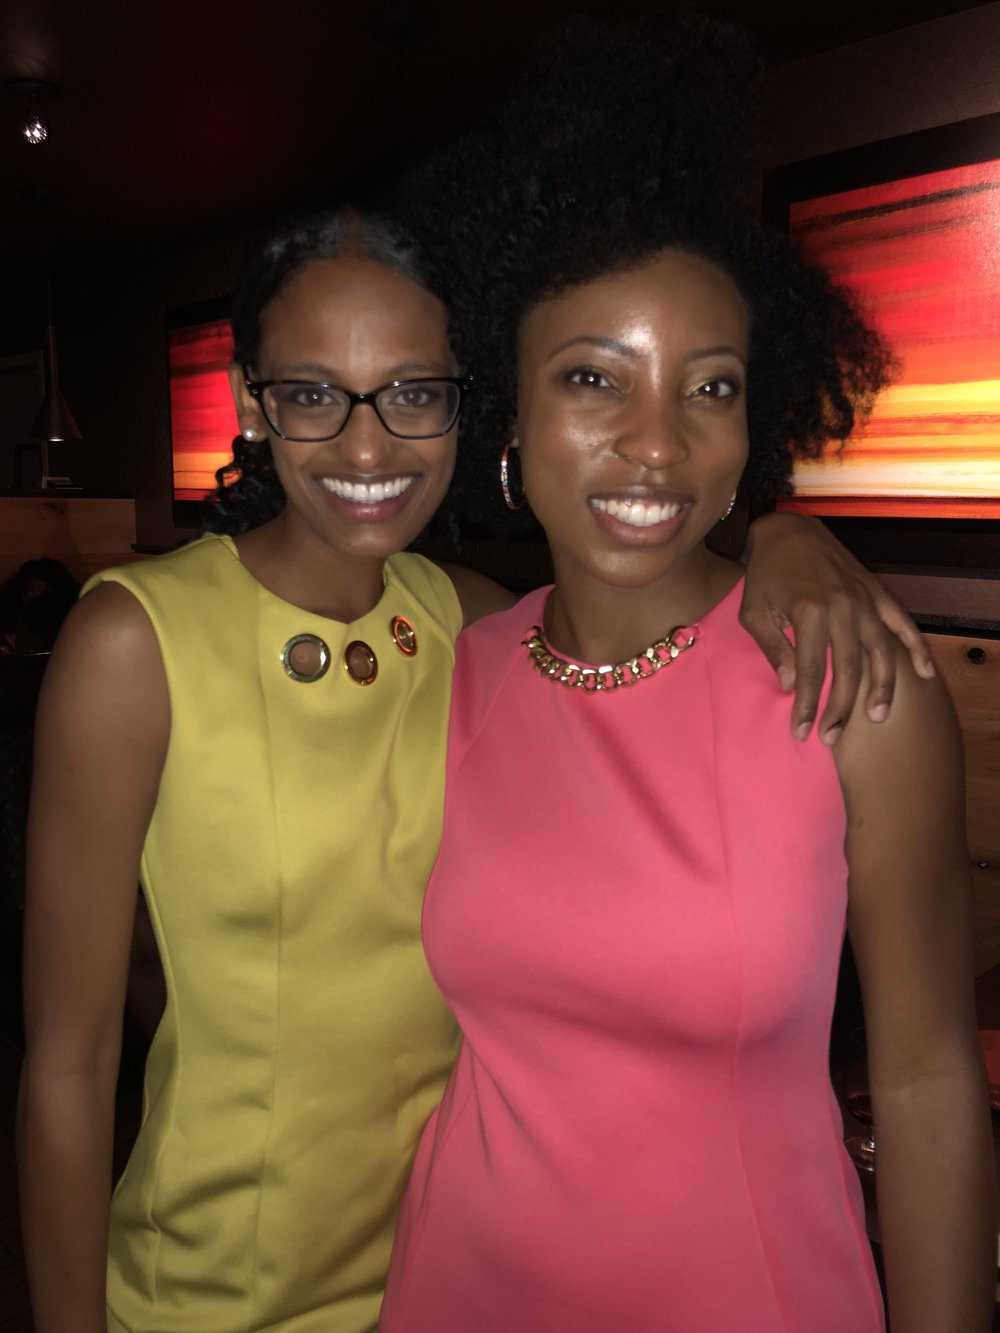 My big sister and mentor Hannah Gebresilassie. She wore traditional East African braids on air while she worked in southern Illinois. She is a huge inspiration to me and I'm lucky to call her my friend.